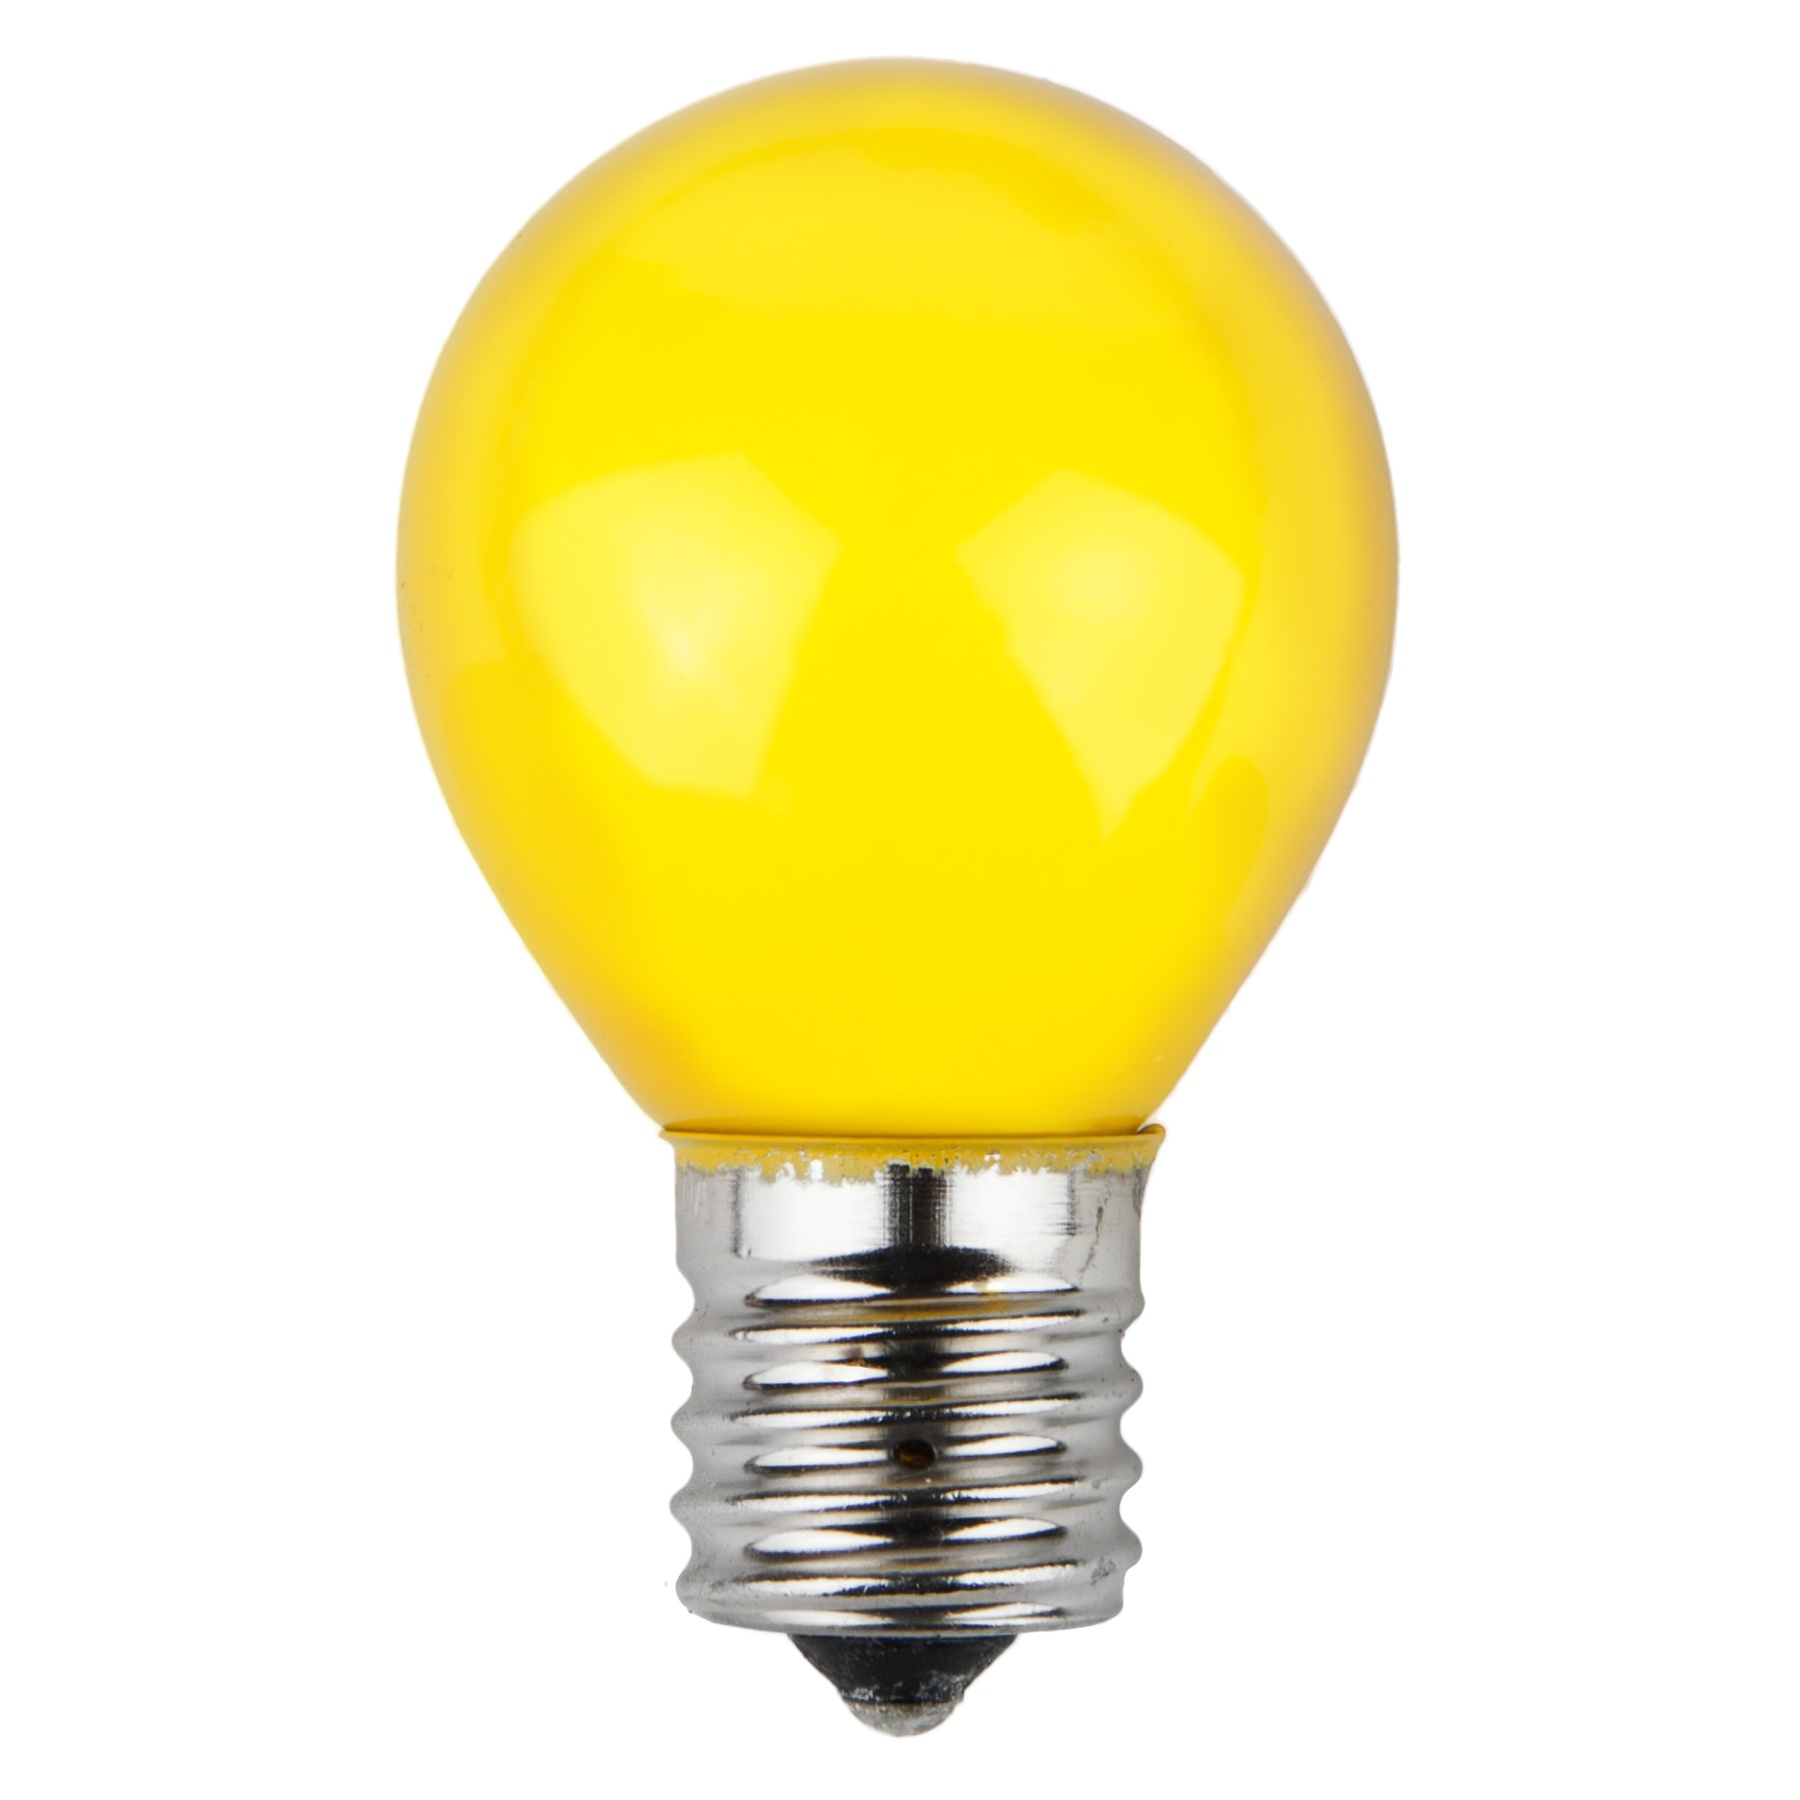 String Lights Replacement Bulbs : E17 Patio and Party Light Bulbs - S11 Opaque Yellow, 10 Watt Replacement Bulbs